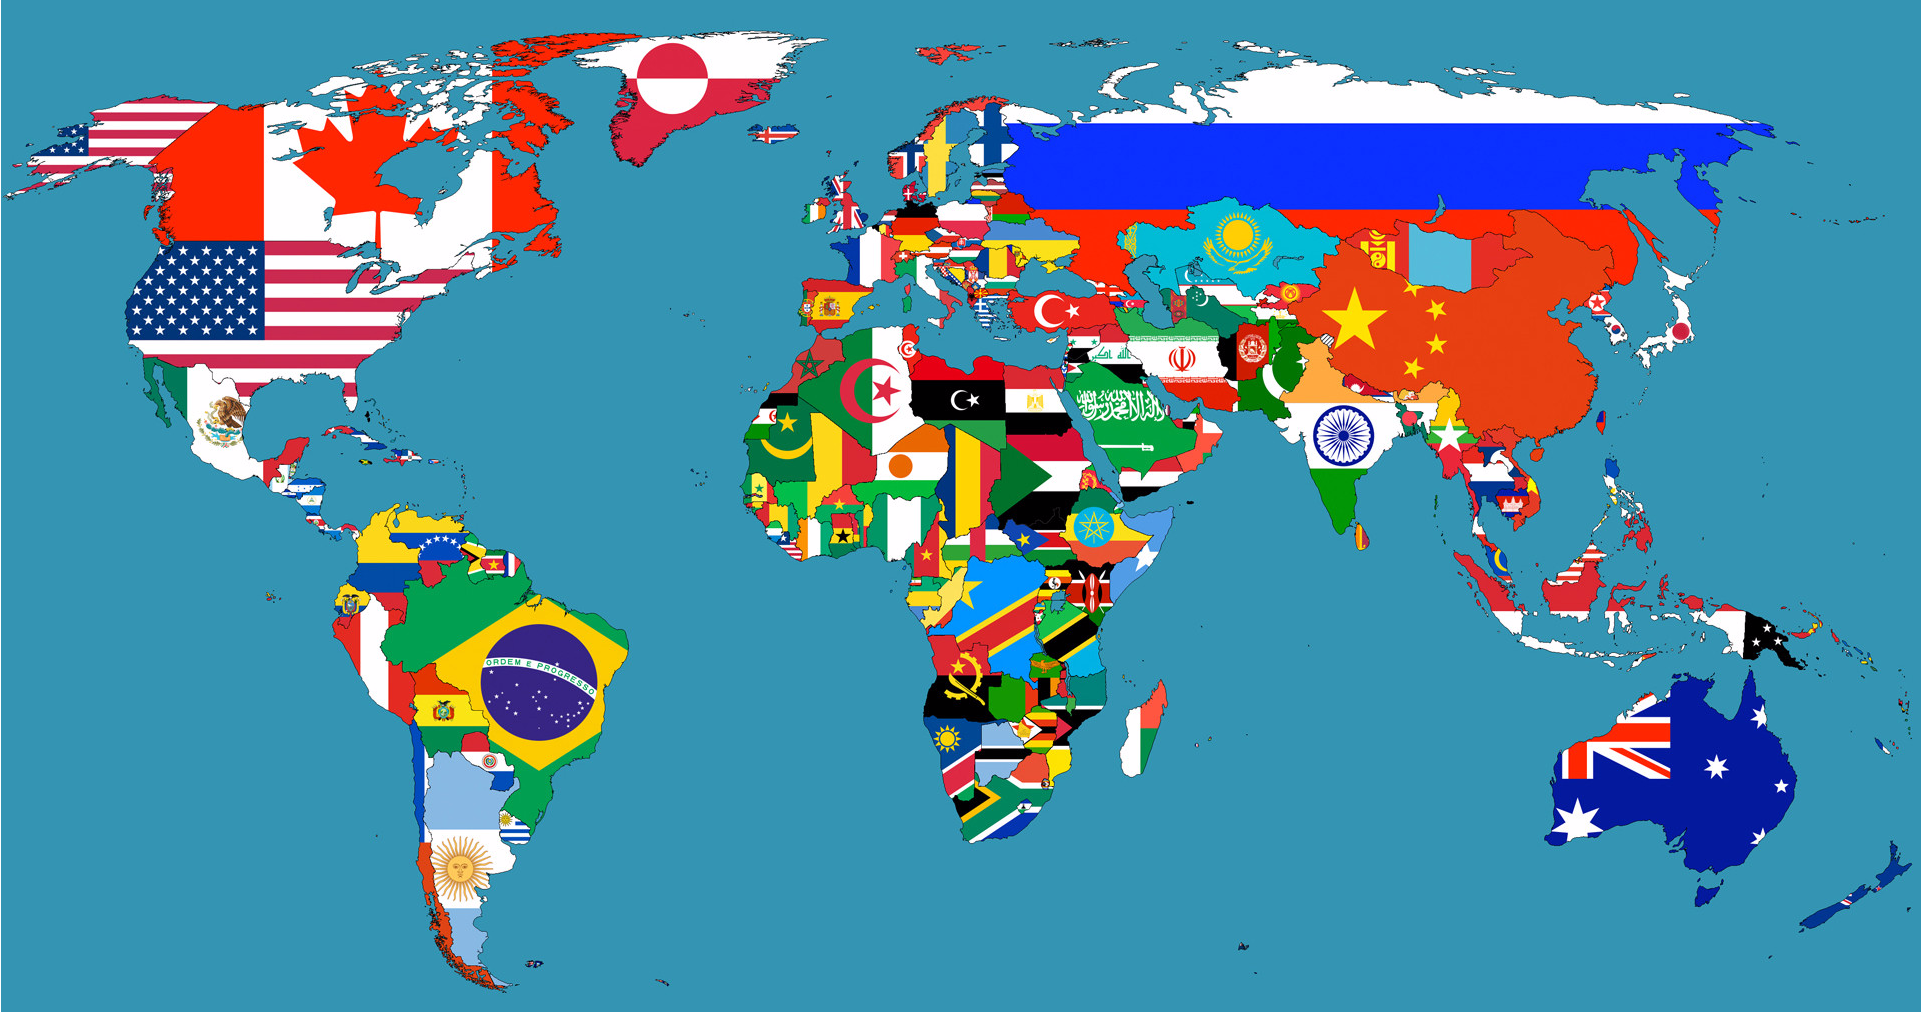 Can You Ace This Grade School Geography Quiz - Geography quiz